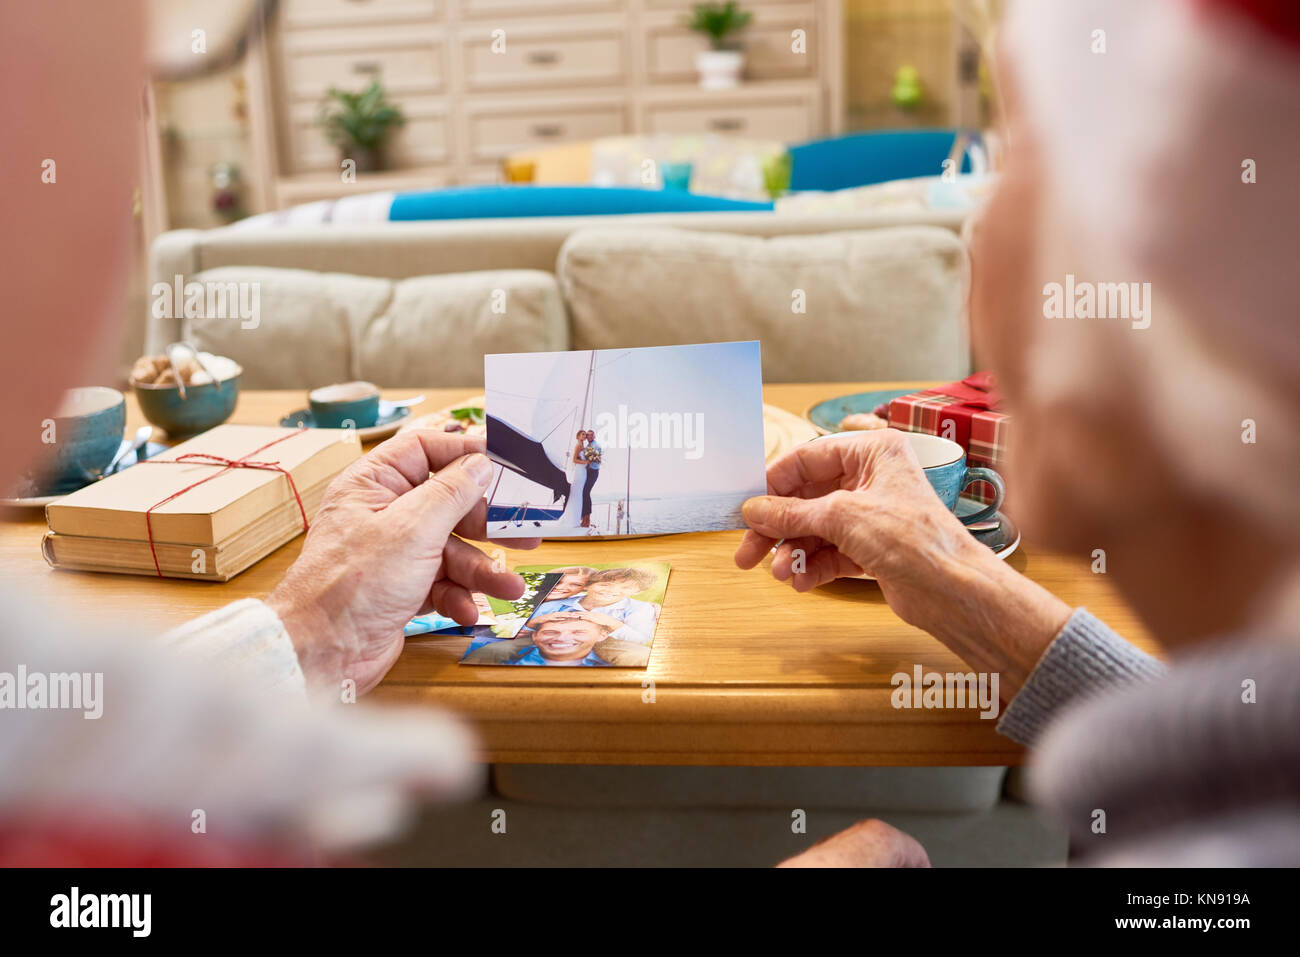 Elderly People Looking at  Photos - Stock Image